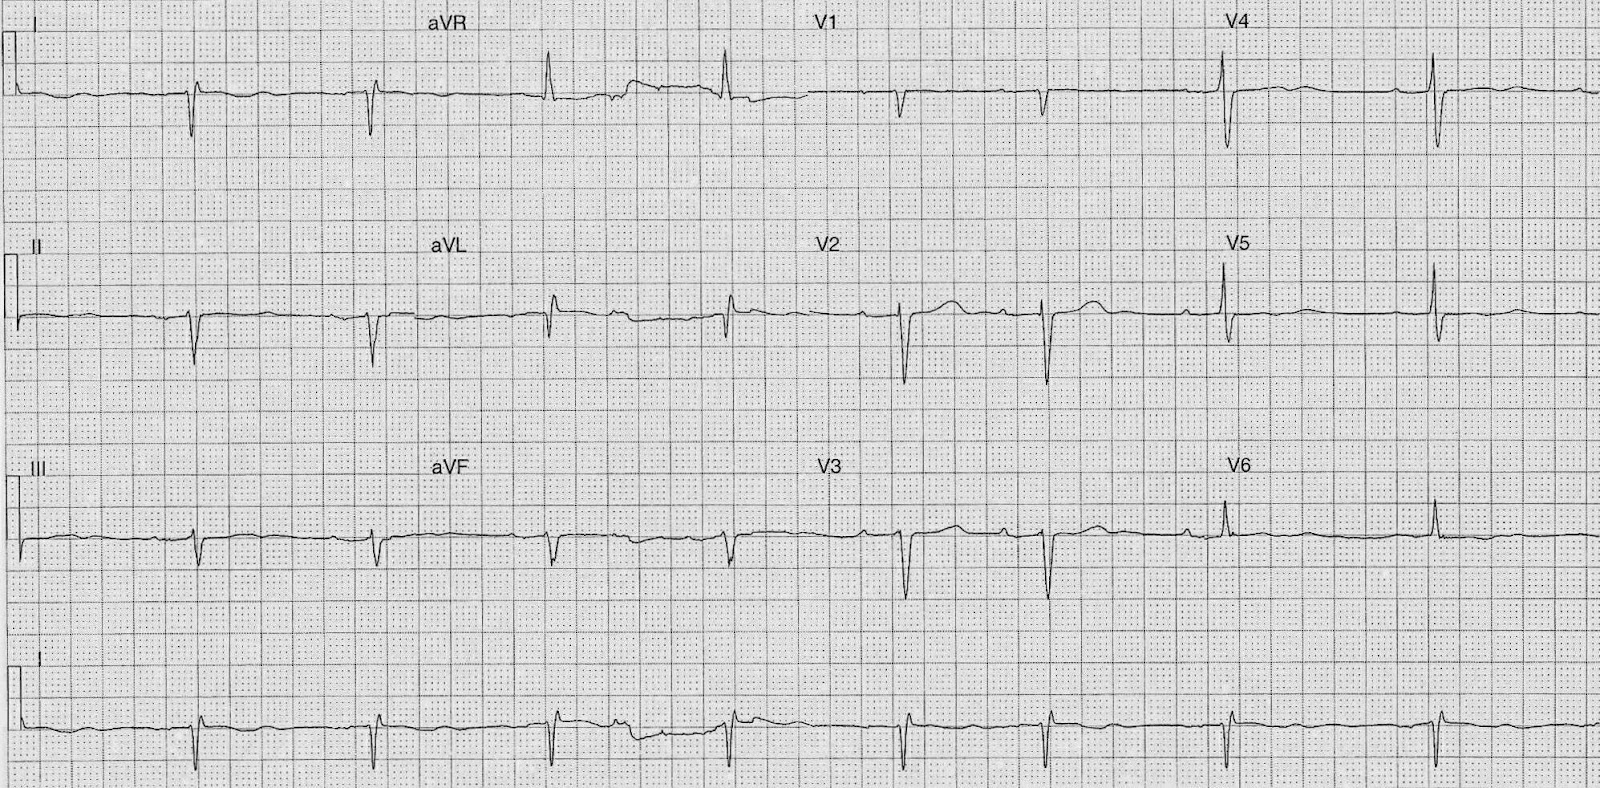 Ecg Of The Week Ecg Of The Week